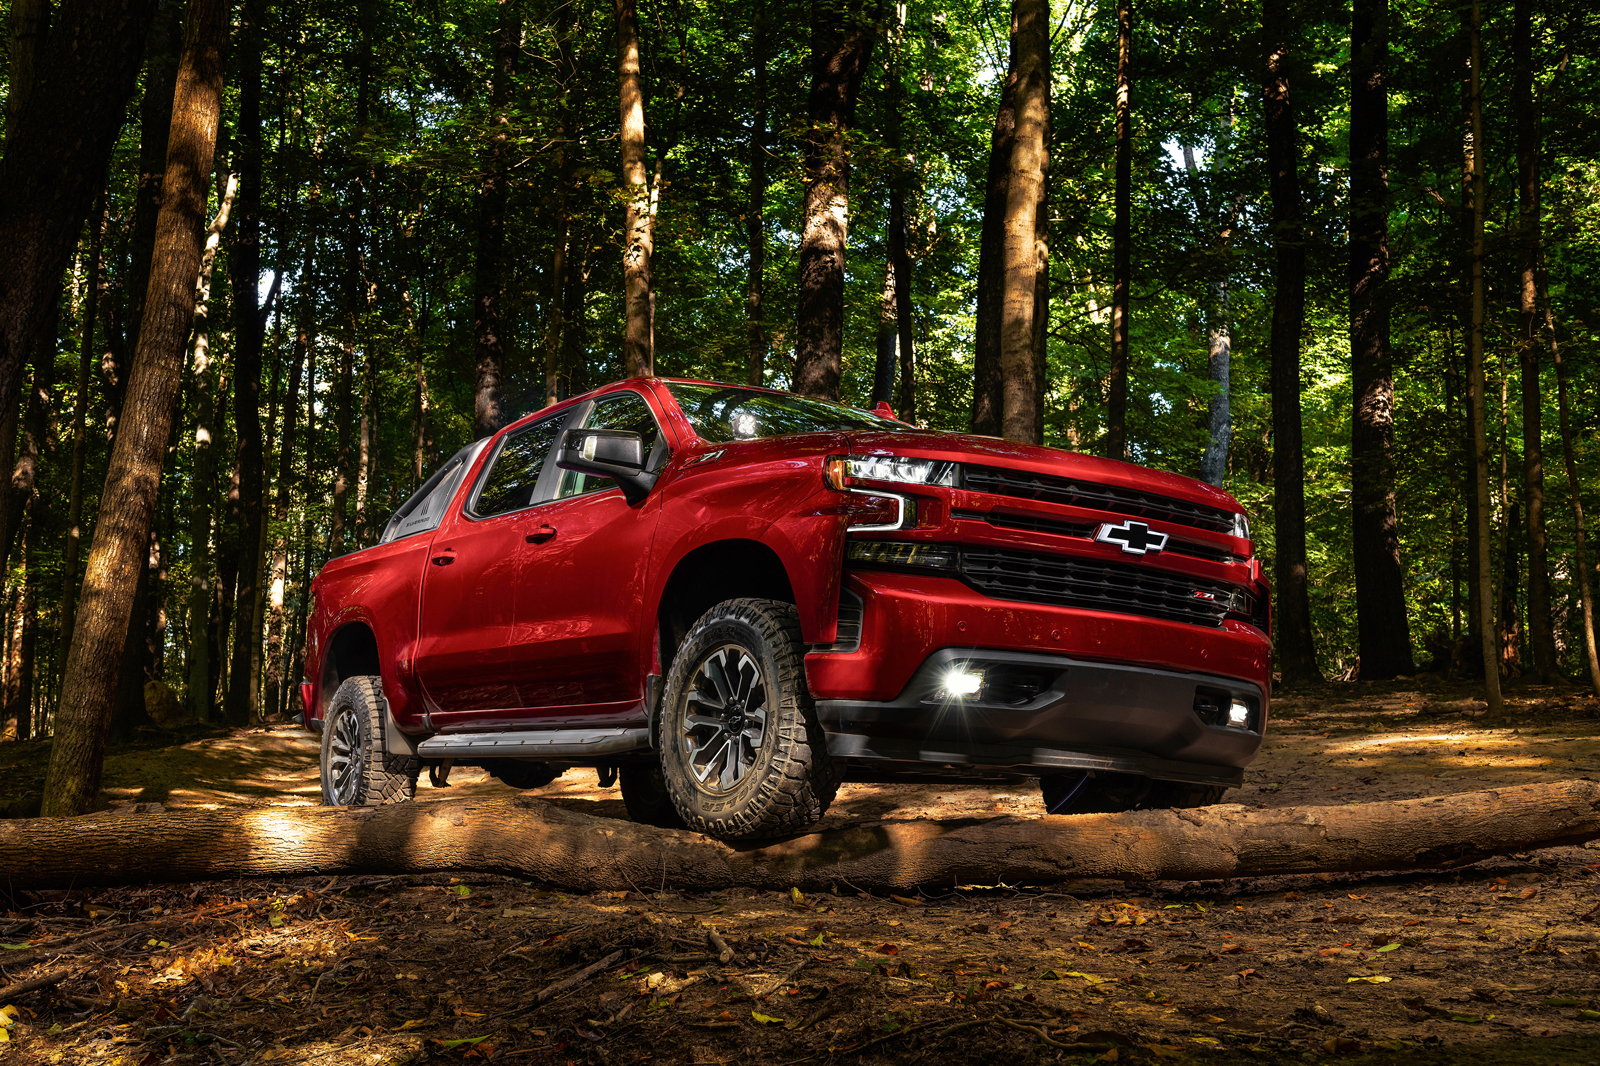 Chevrolet Silverado RST Off-Road and RST Sport Concepts ...